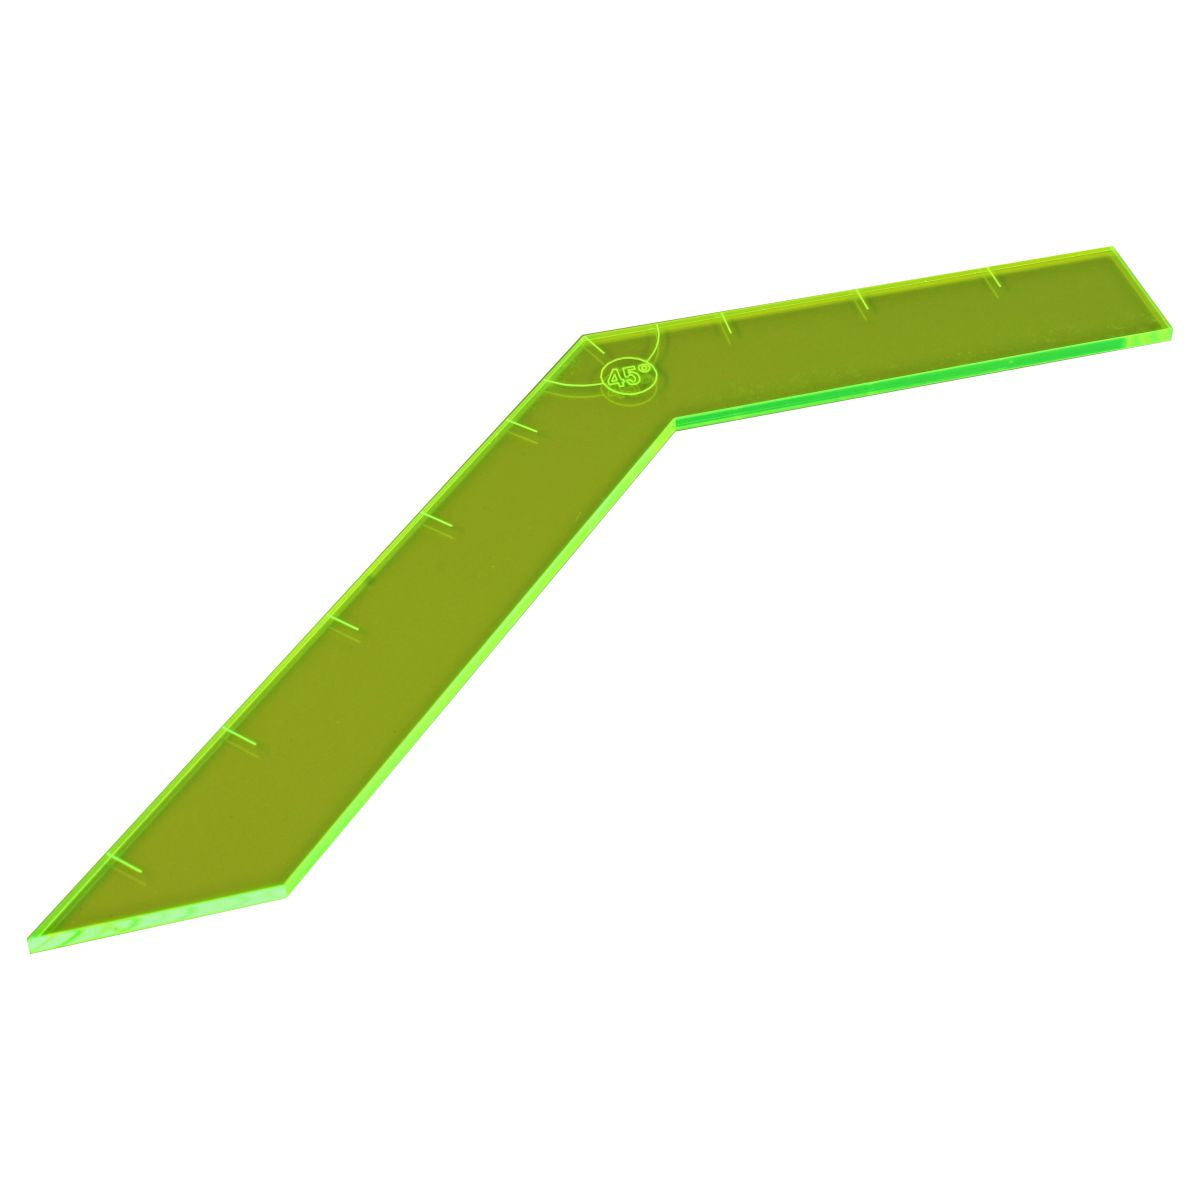 LITKO Turn Template Compatible with Savage Worlds, Fluorescent Green